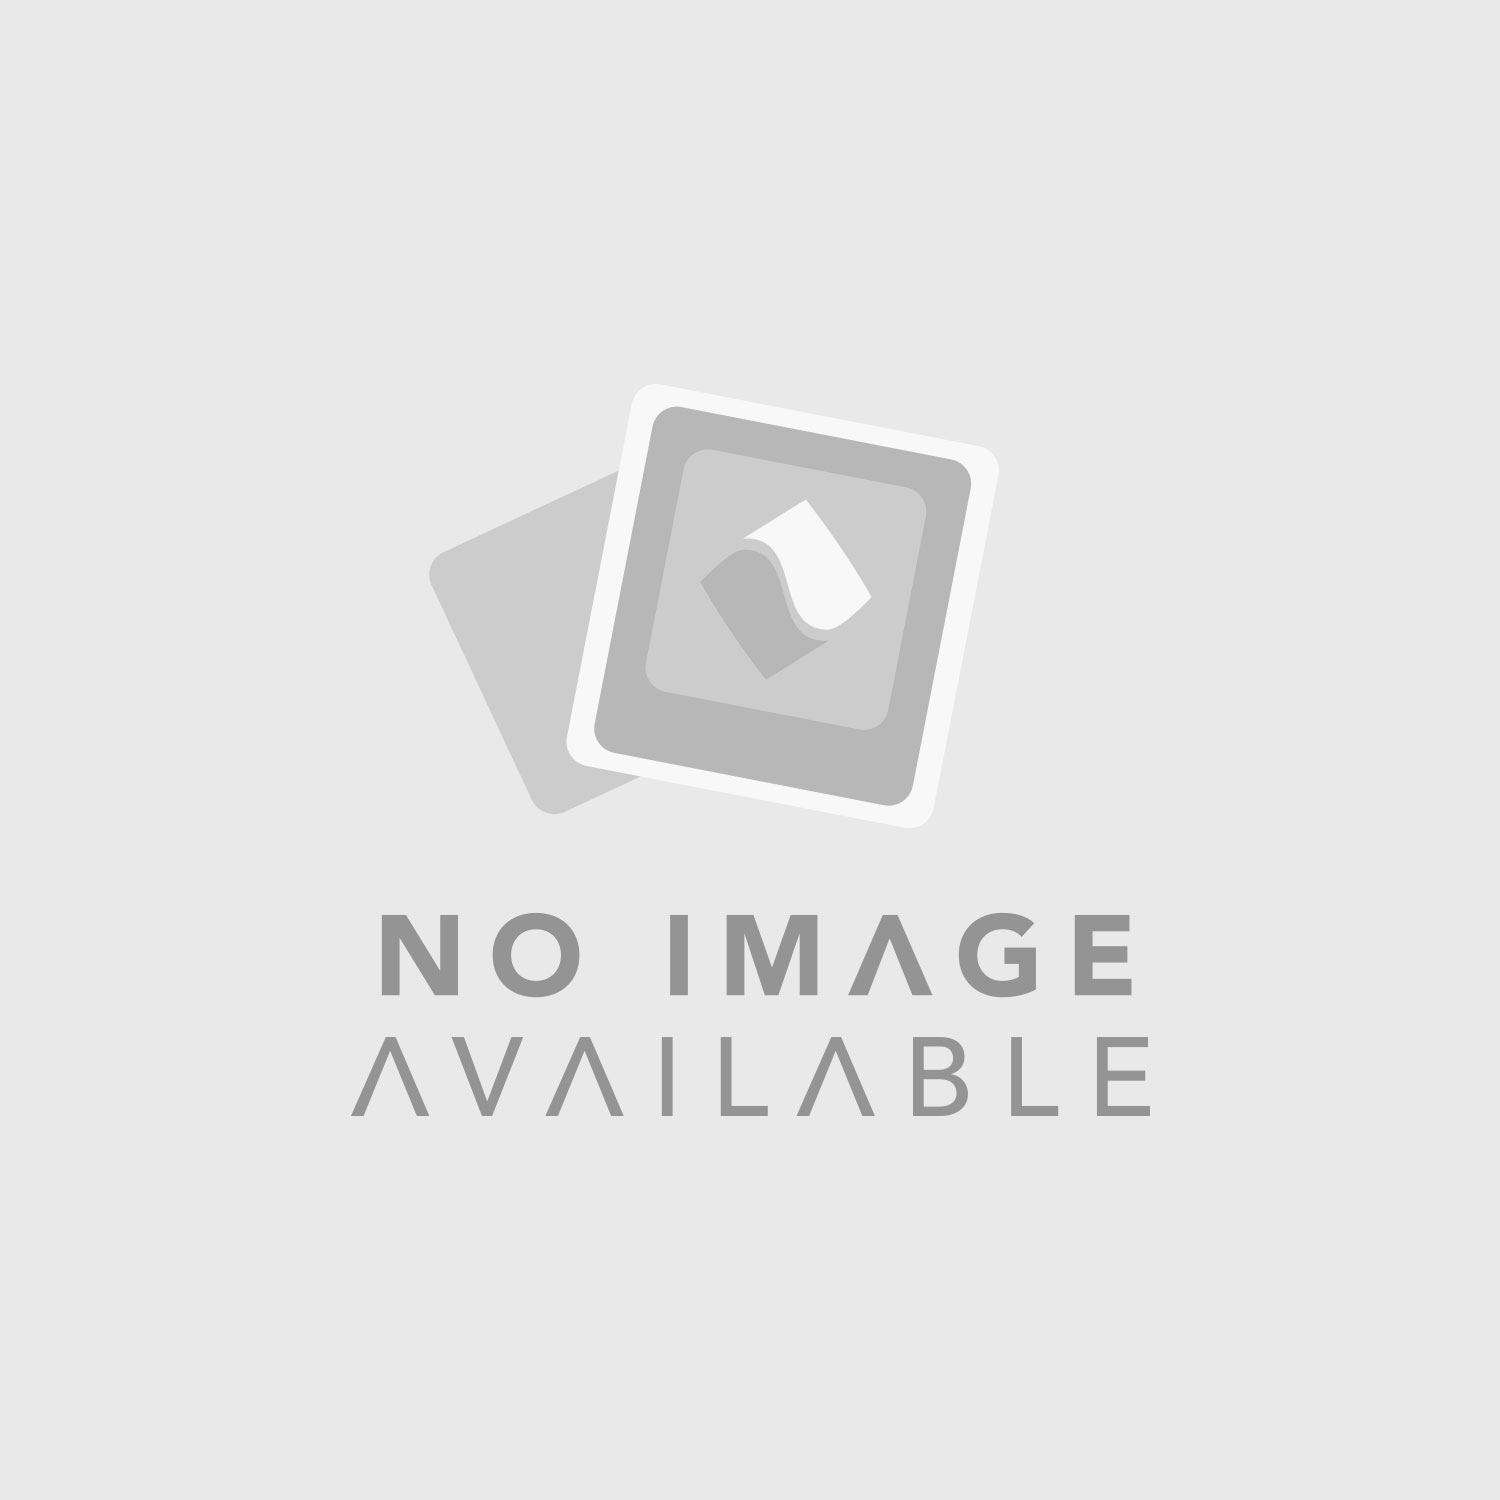 ART USBMix 3-Channel Mixer and USB Audio Interface